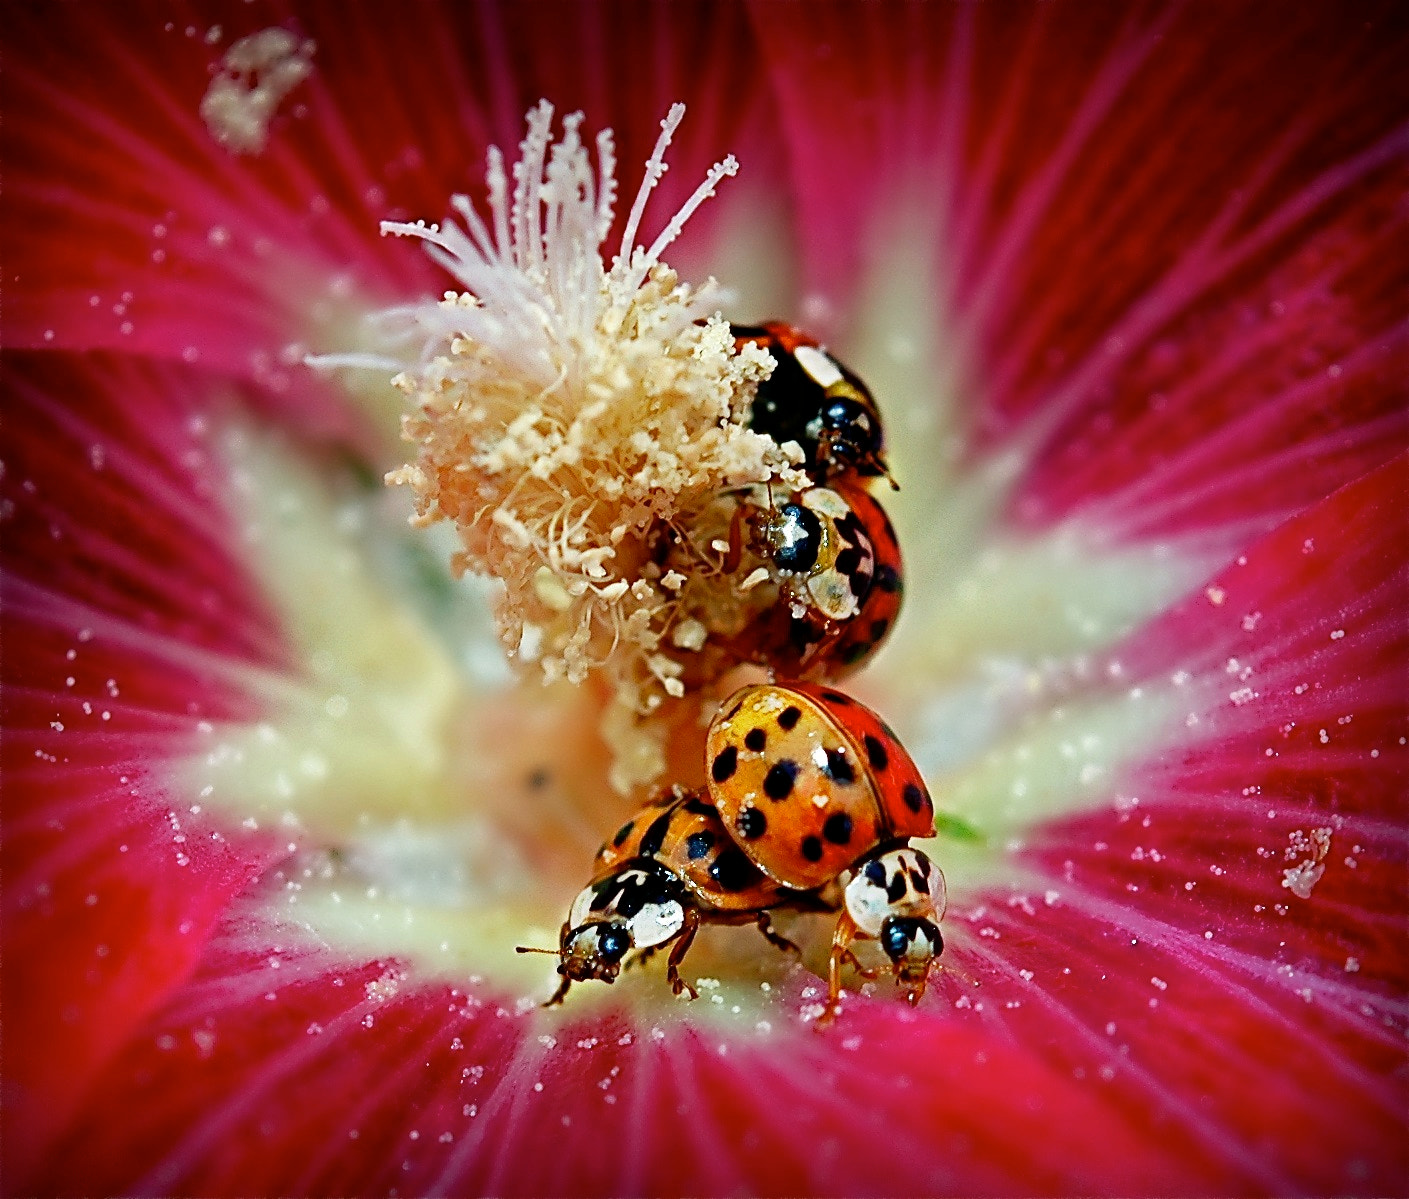 Photograph Ladybug Burst by clare scott on 500px